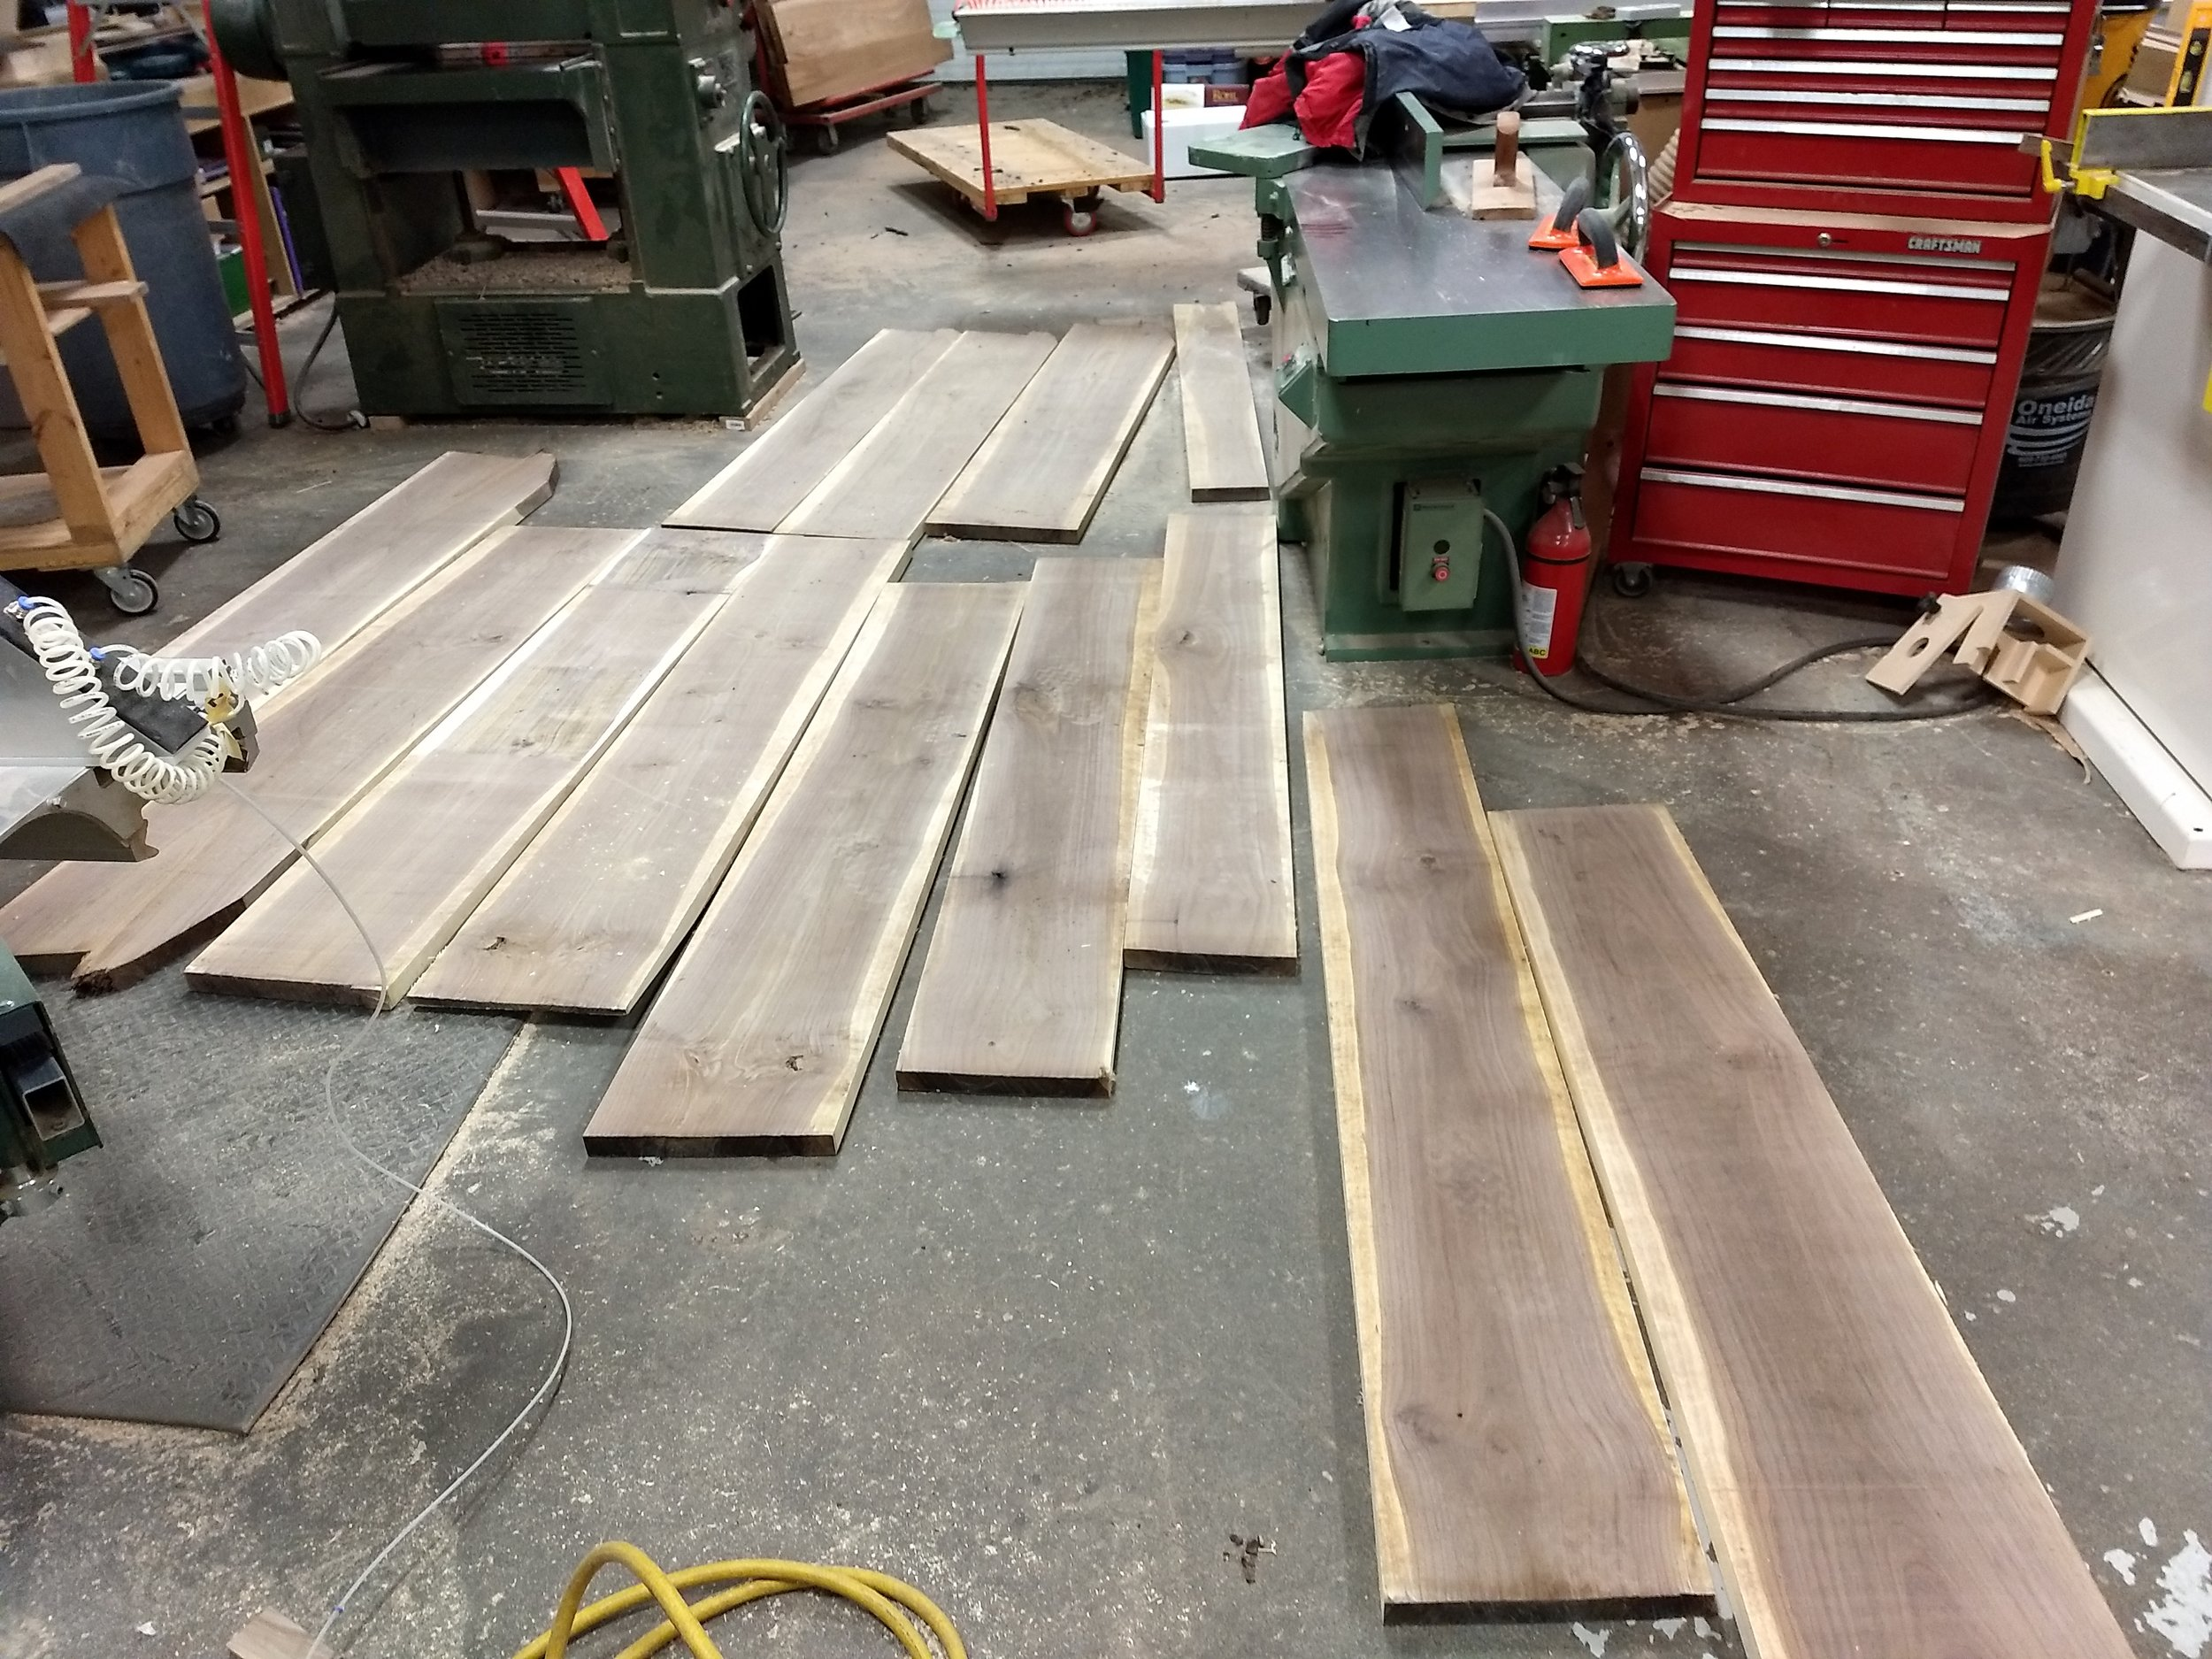 Finished planks laid out on the floor